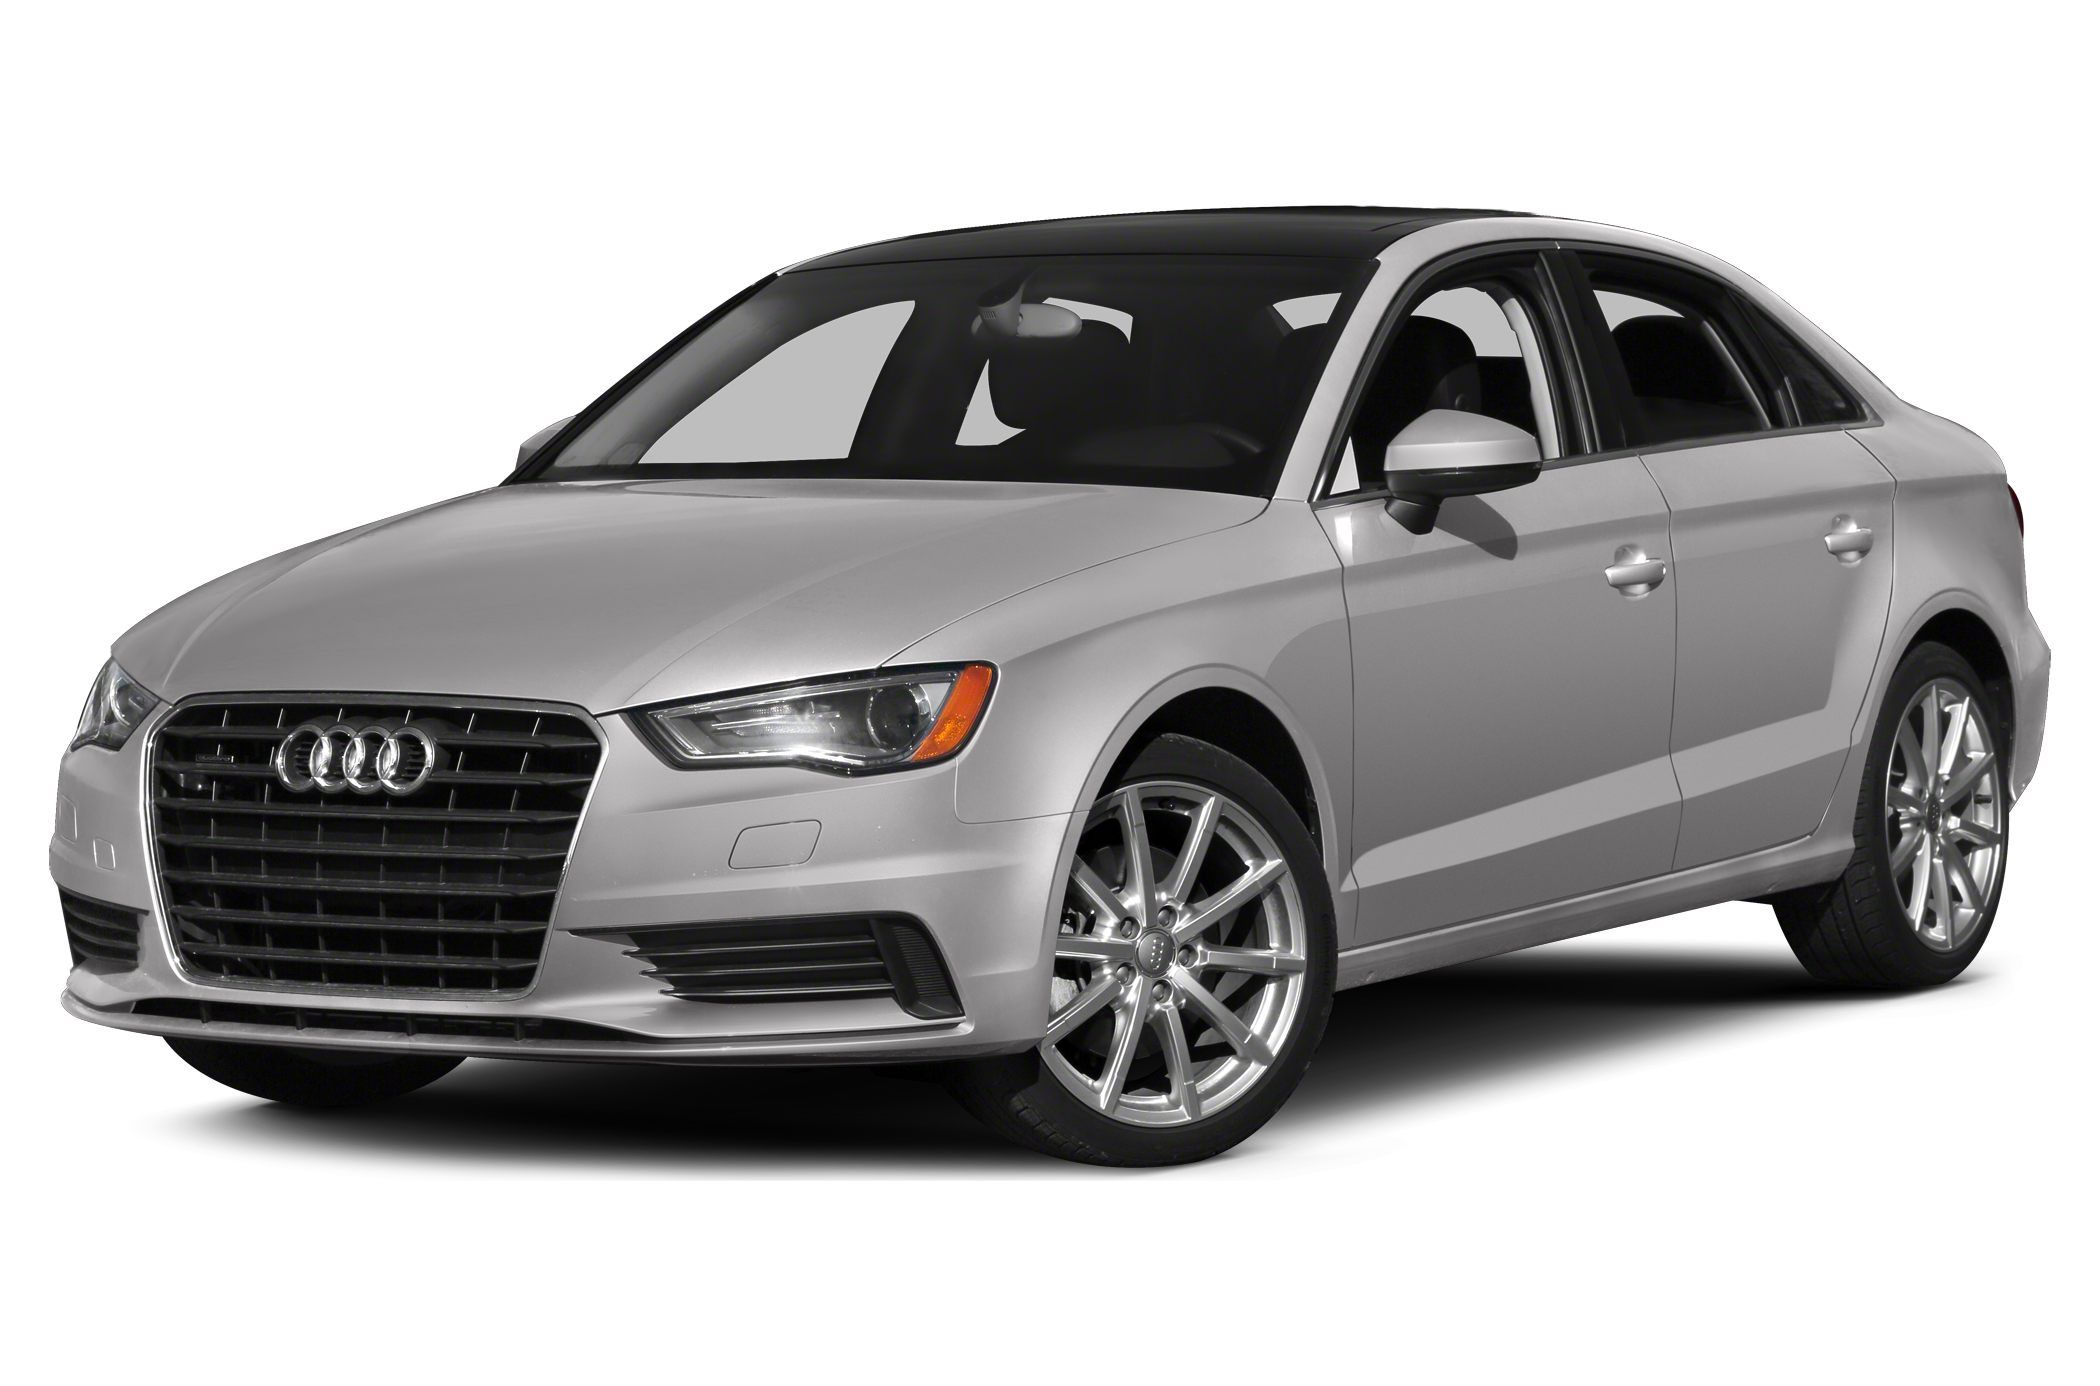 Find All New Audi Car Listings In India Enter Quikrcars To Find Great Deals On New Audi A3 In India With On Road Price Images Spec New Audi Car Audi A3 Audi